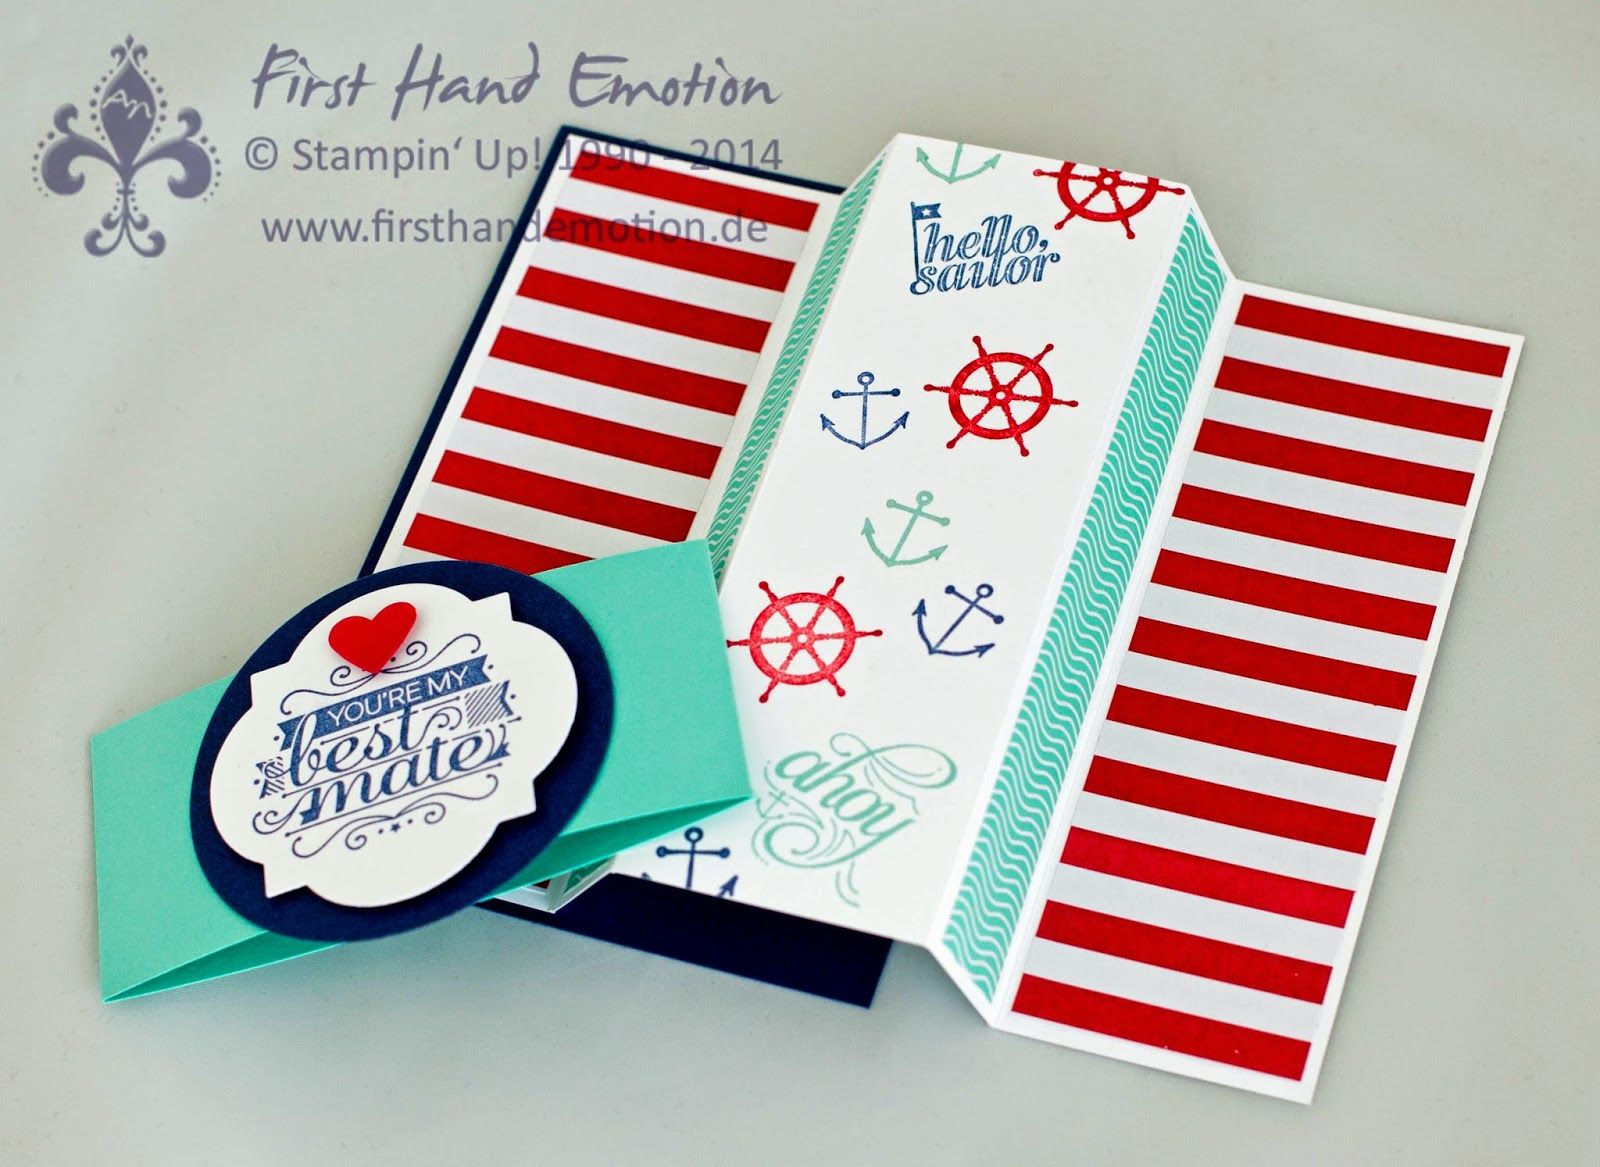 Stampin' Up! by First Hand Emotion: IN{K}SPIRE_me Challenge #152: Hello, Sailor